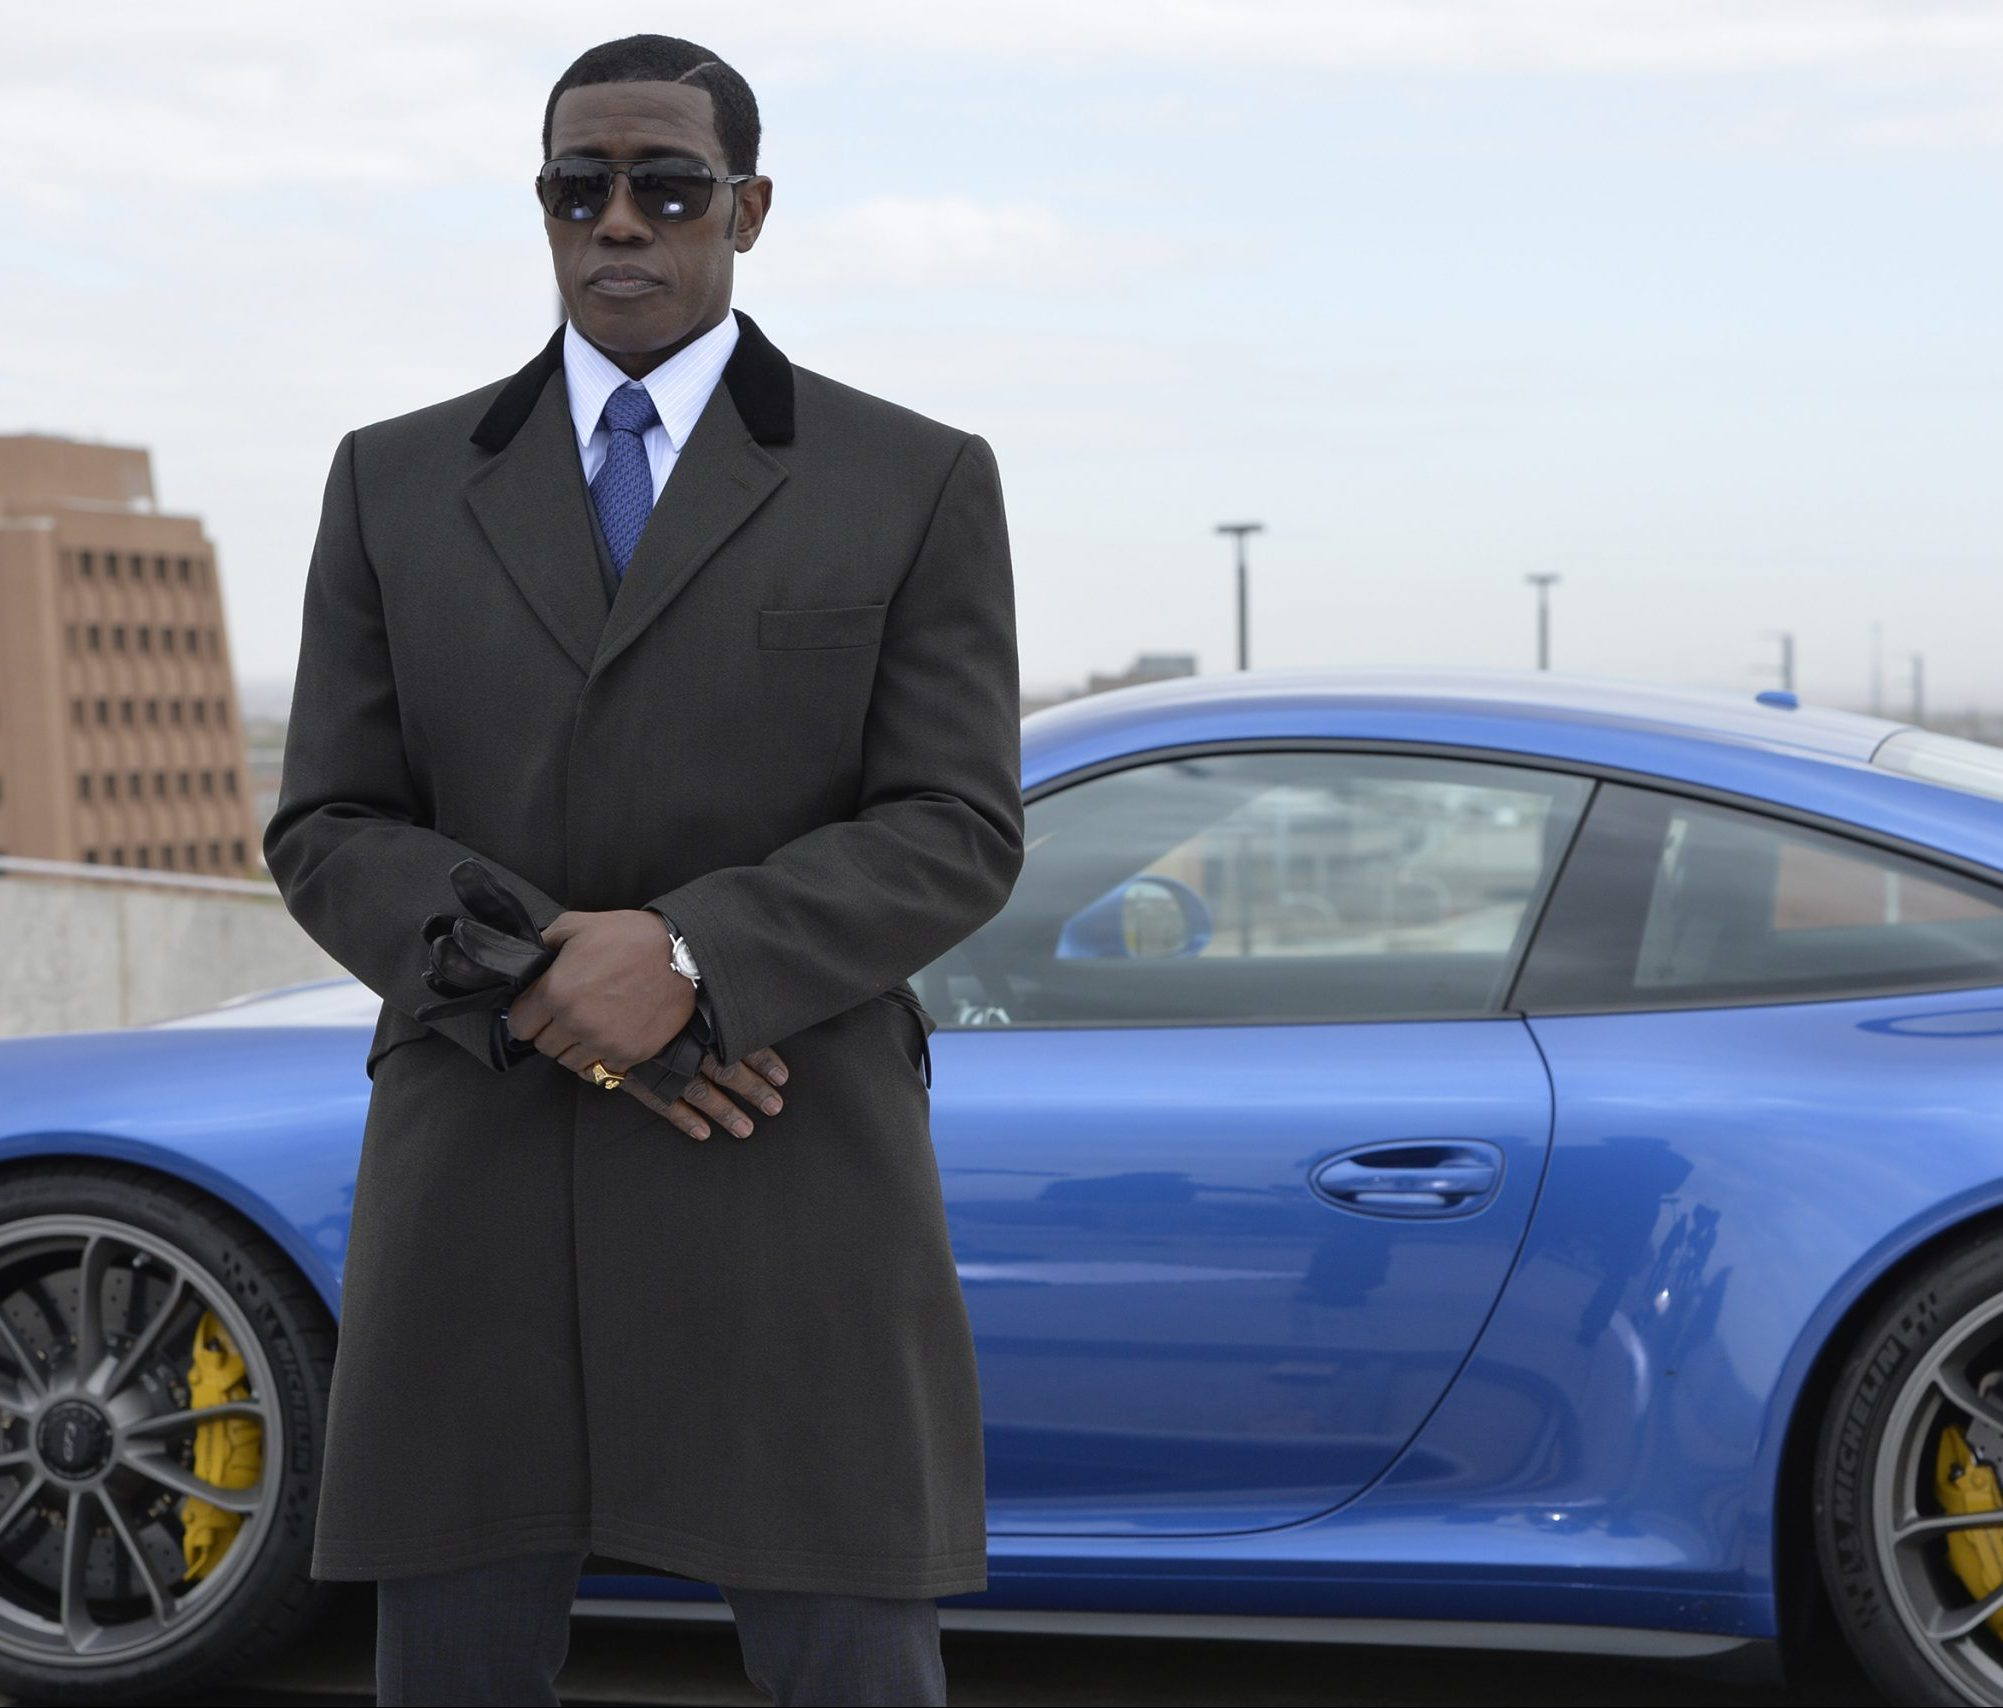 635787080465302482 NUP 167824 1452 226649 ver1.0 scaled e1607344495373 19 Things You Might Not Have Realised About Wesley Snipes